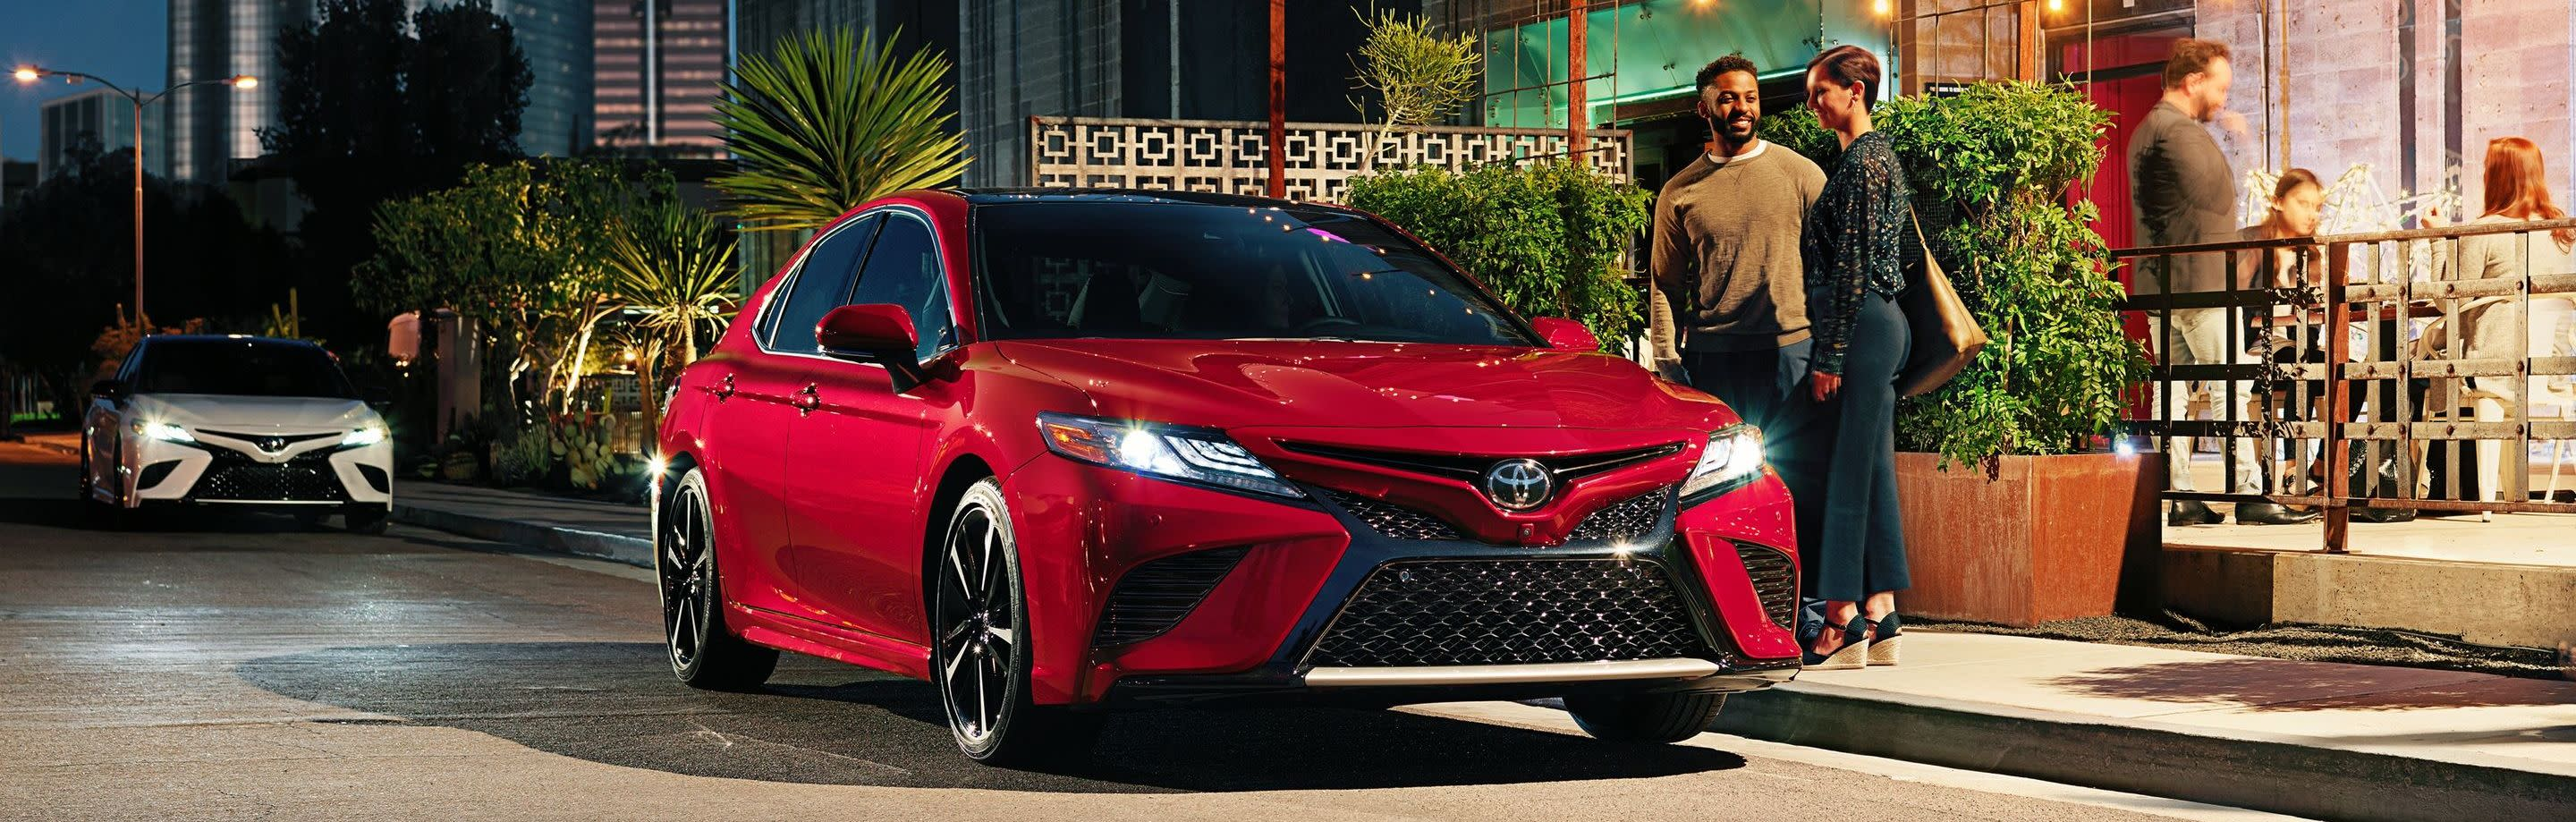 2020 Toyota Camry for Sale near Oak Brook, IL